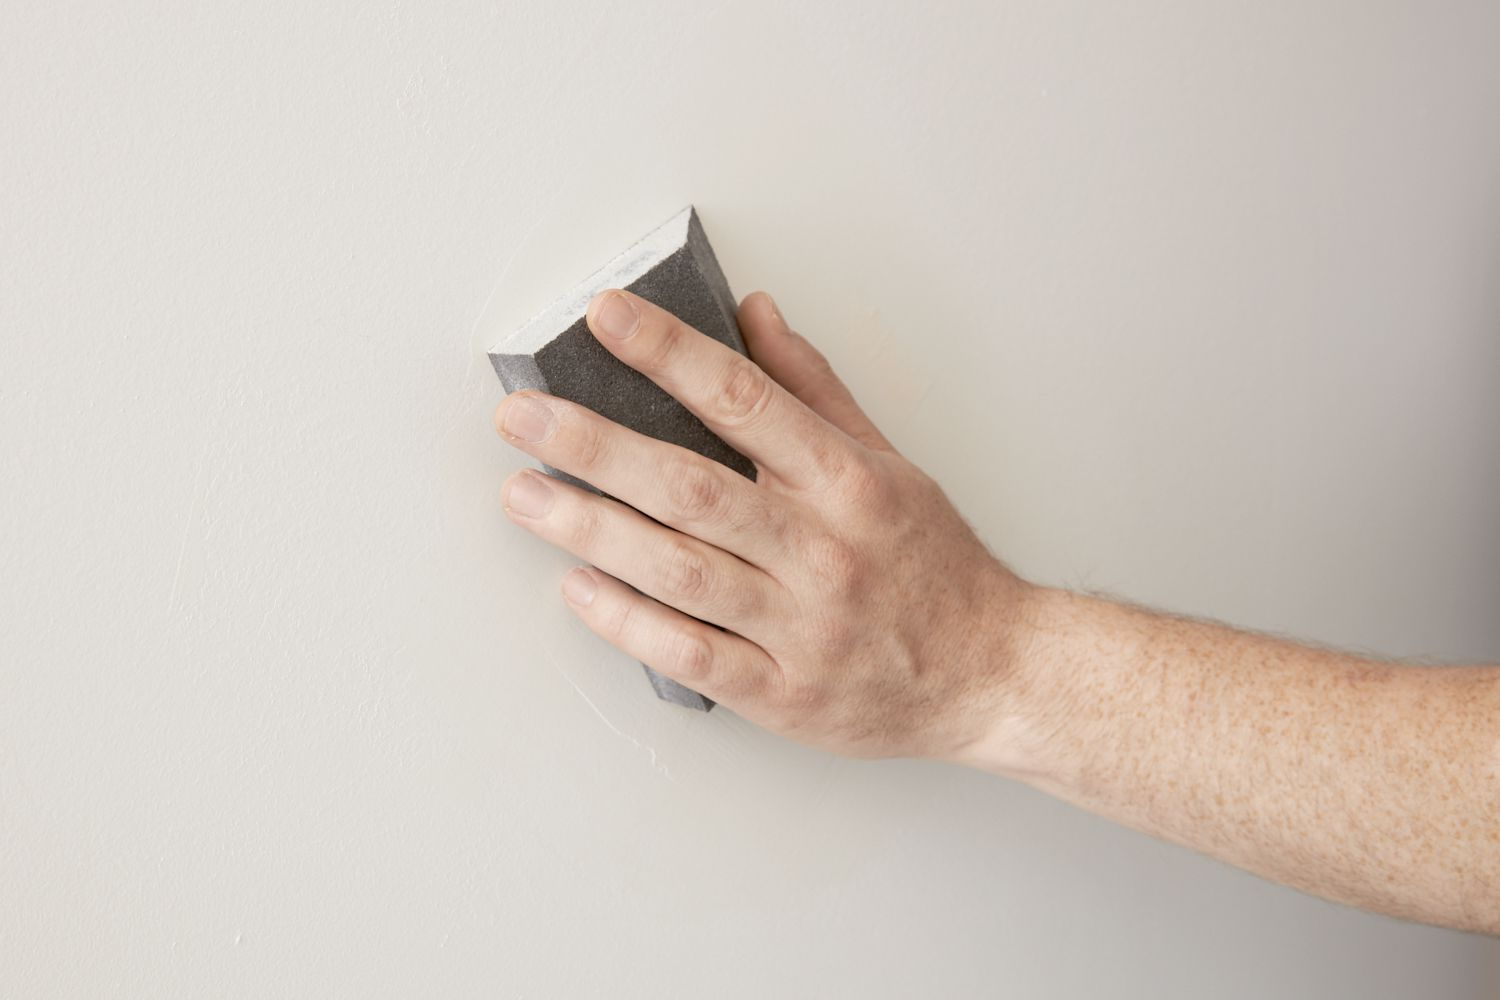 sanding the drywall patch